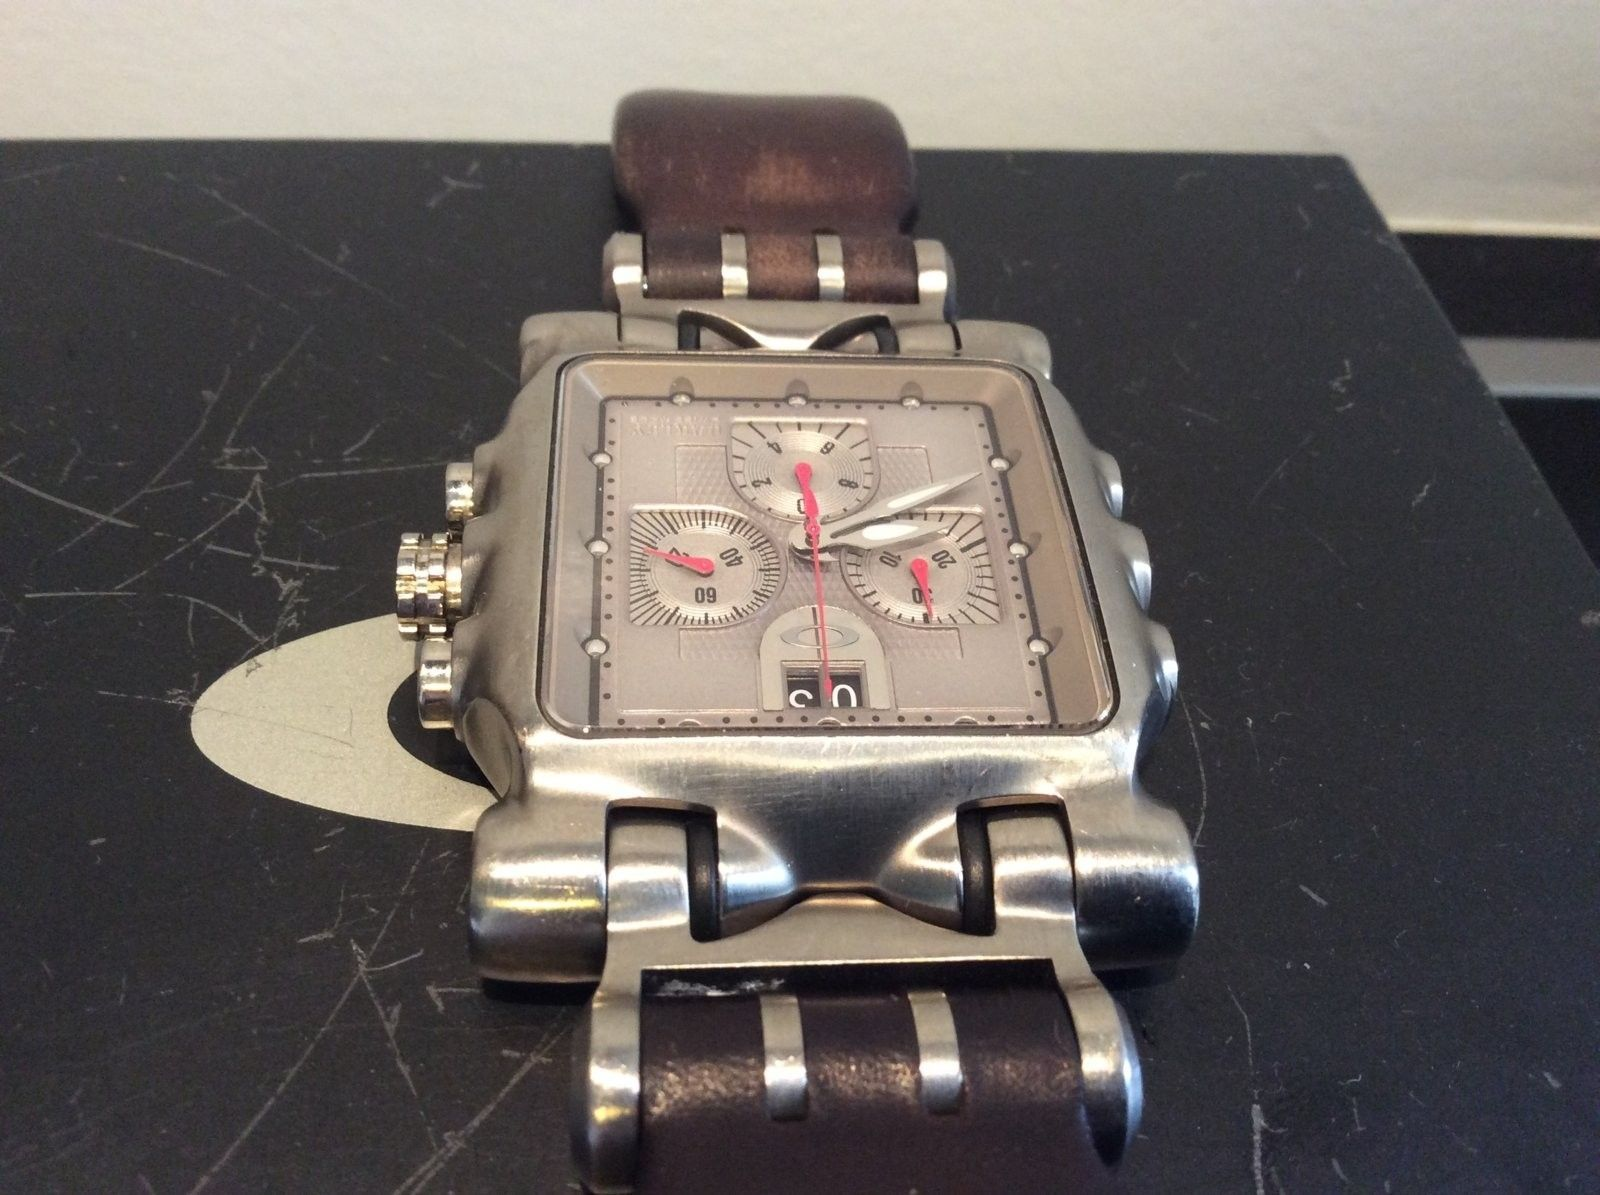 Minute Machine - Titanium/silver w/brown leather - USED - image.jpeg